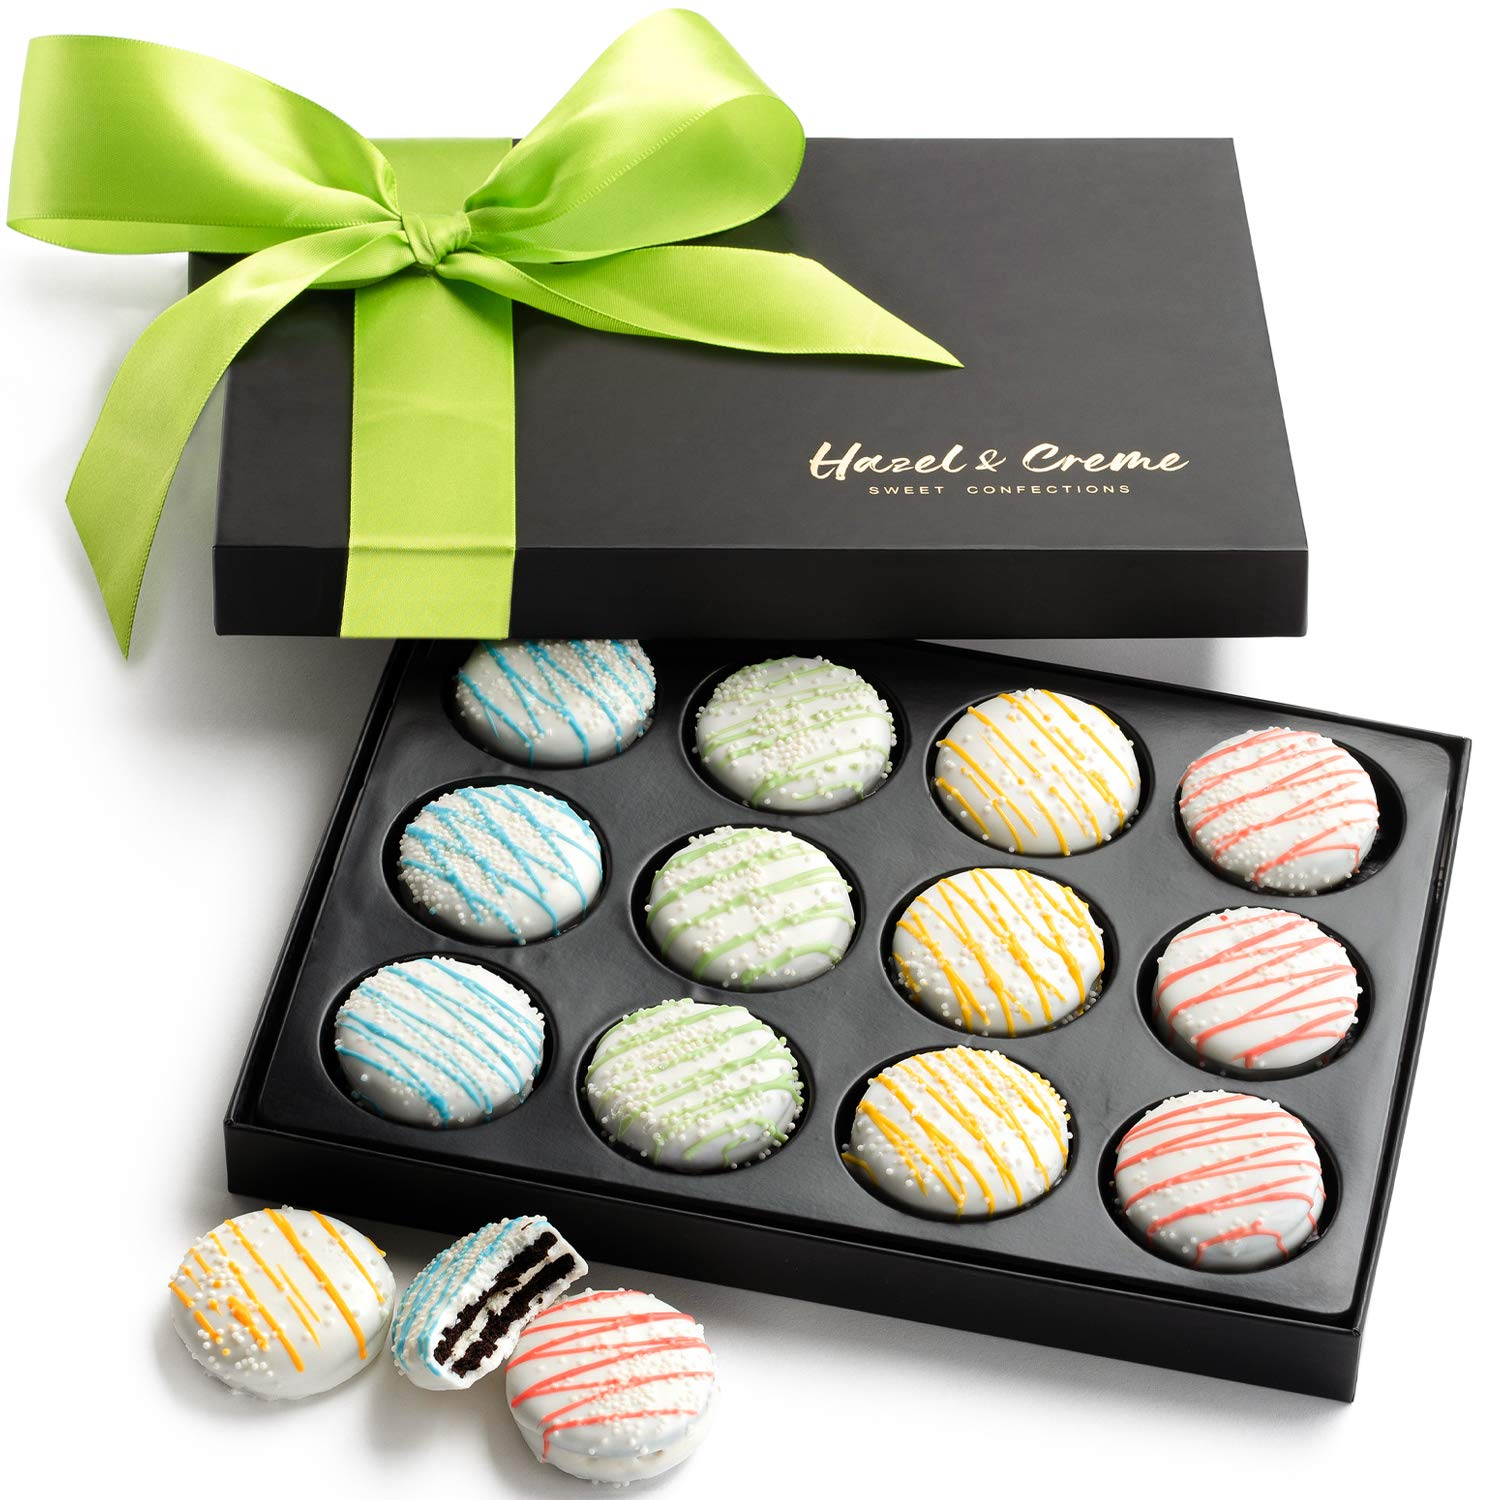 Hazel & Creme Chocolate Gift Box - Easter Designed Cookies - Spring White Chocolate Covered Cookies - Gourmet Birthday Food Gift Basket